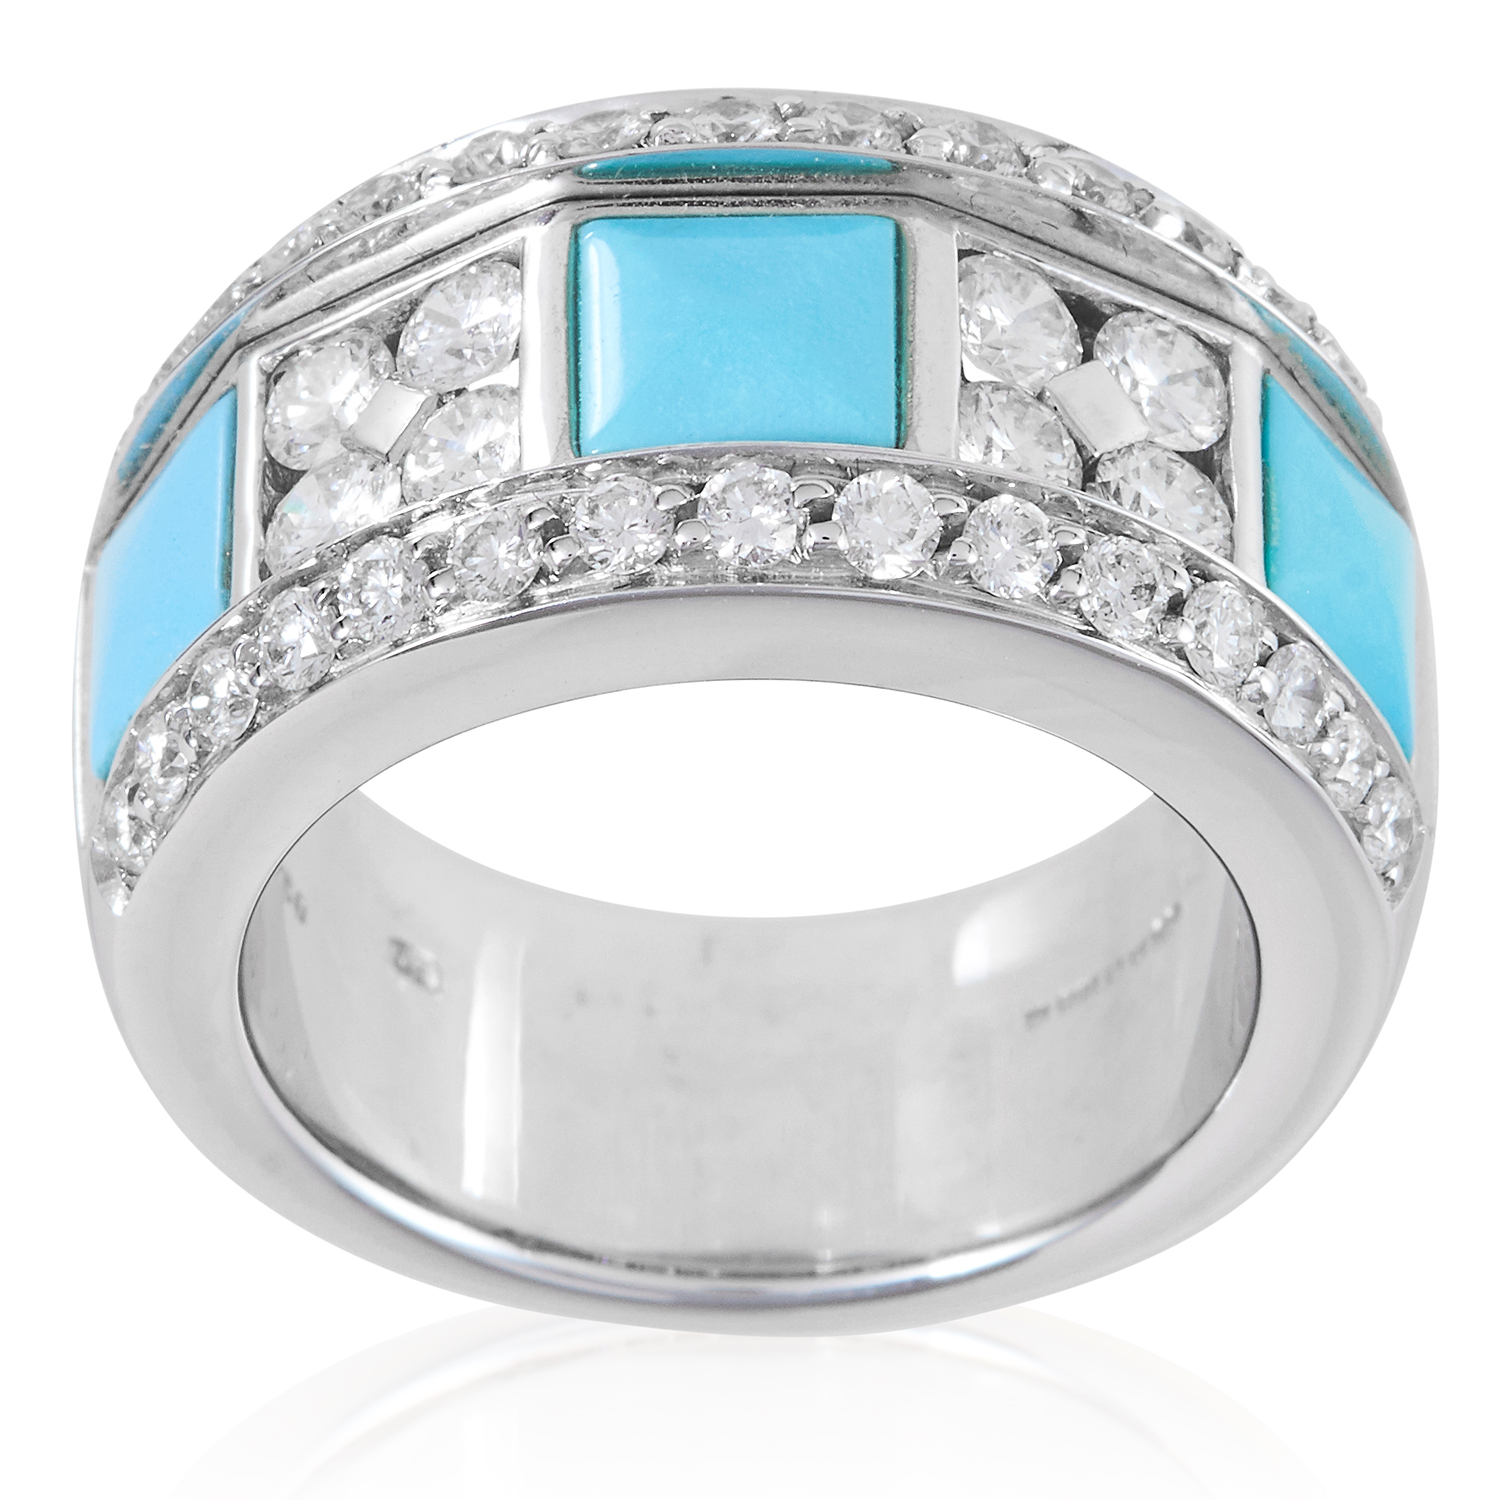 A TURQUOISE AND DIAMOND RING, PICCHIOTTI in 18ct white gold, set with alternating square turquoise